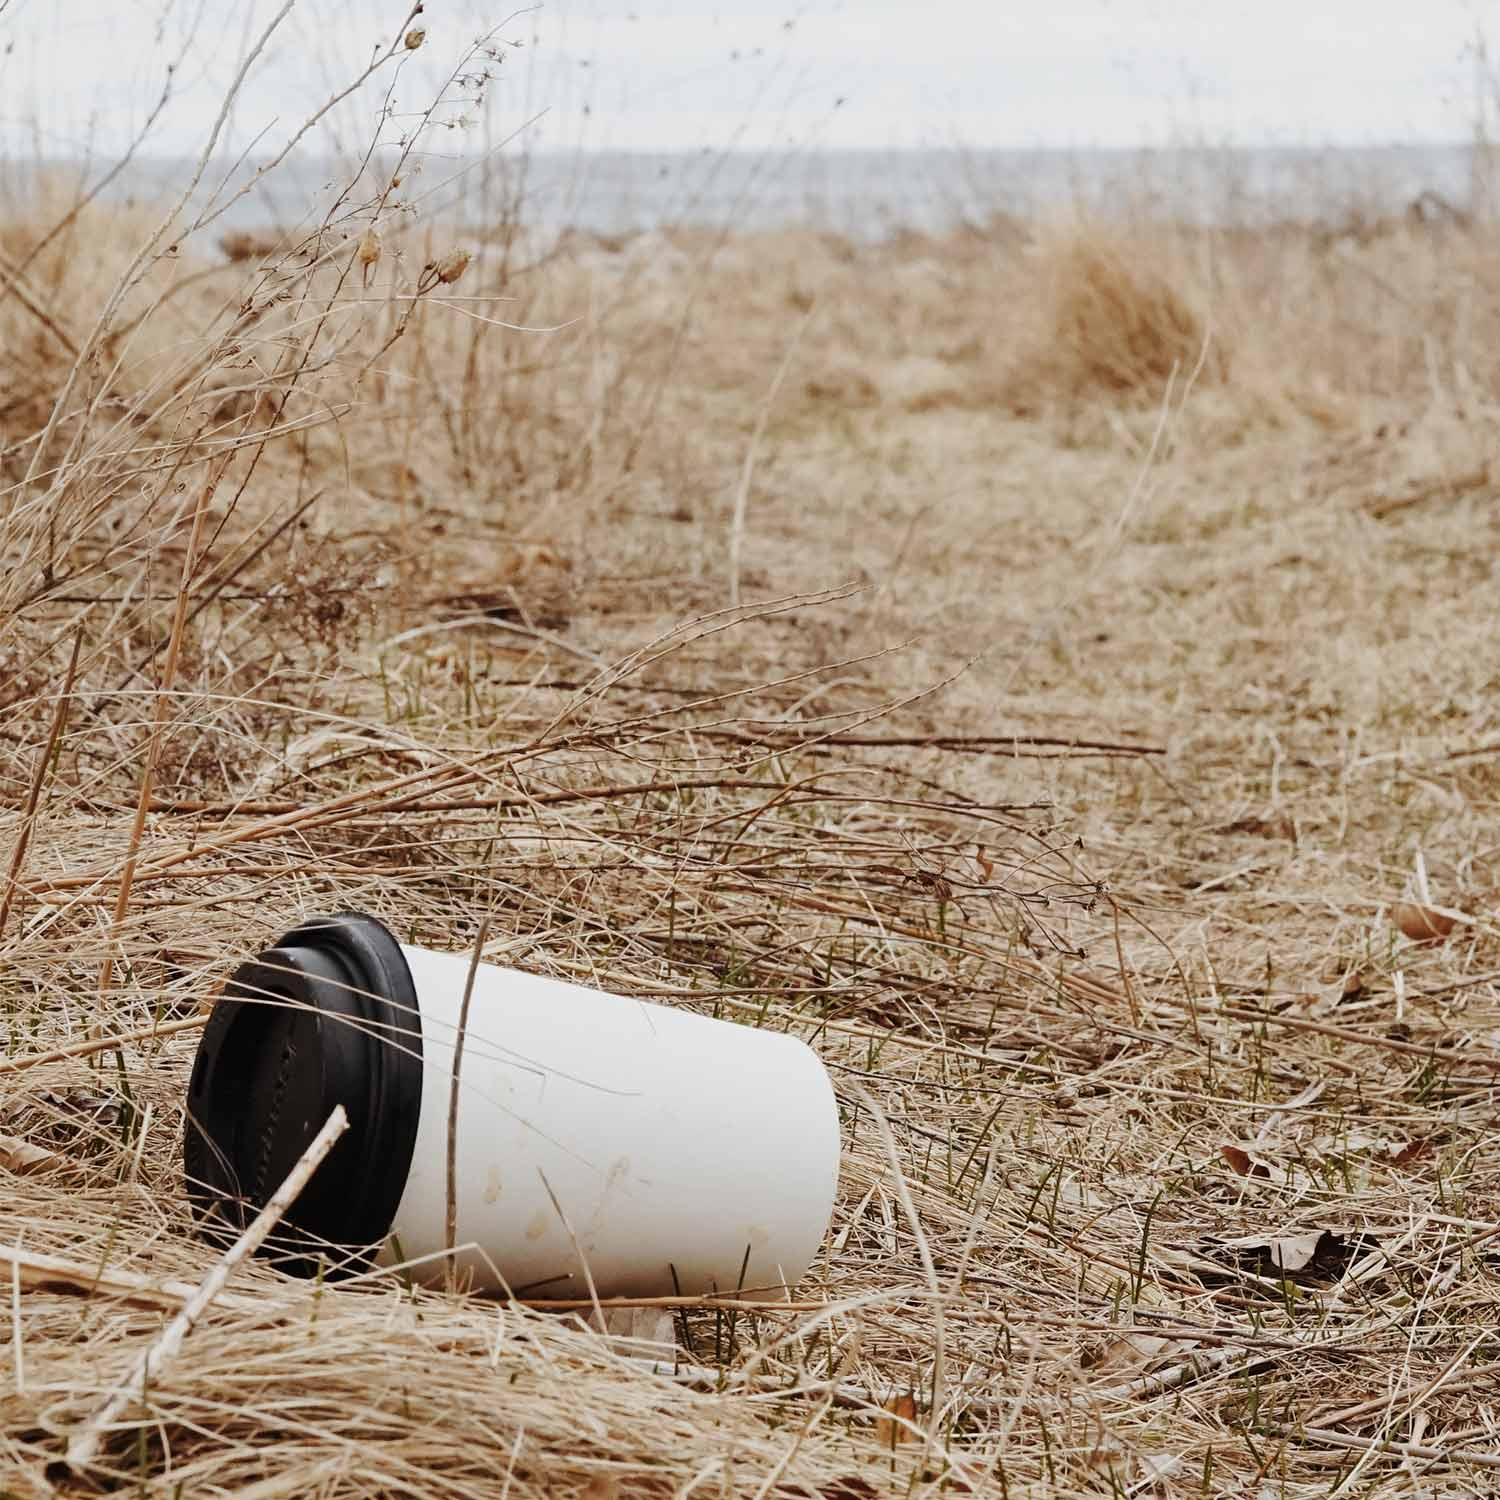 Image of coffee cup in the environment